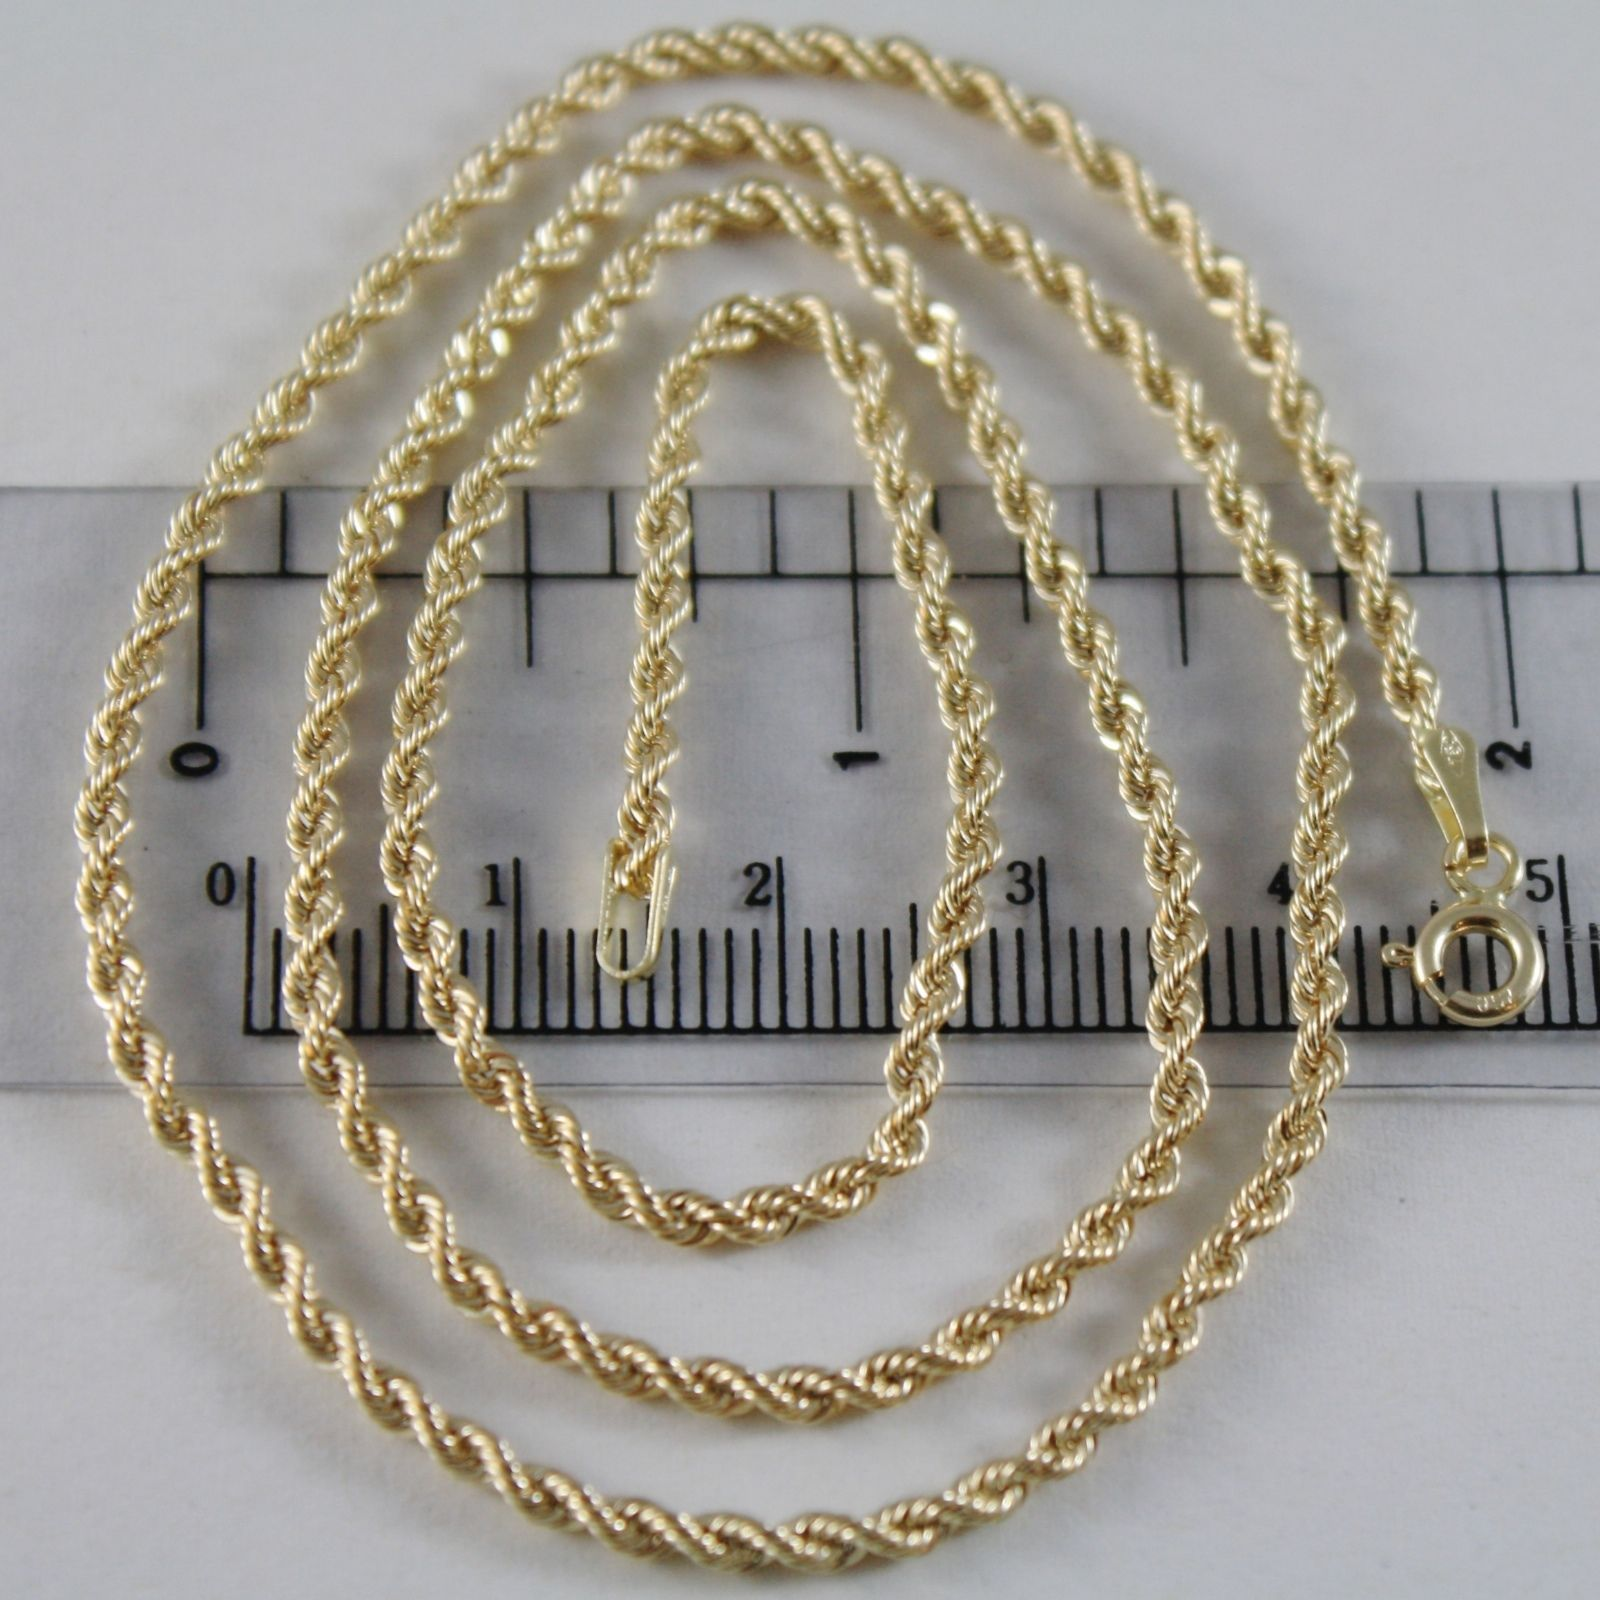 18K YELLOW GOLD CHAIN NECKLACE, BRAID ROPE LINK 23.62 INCHES 60 CM MADE IN ITALY